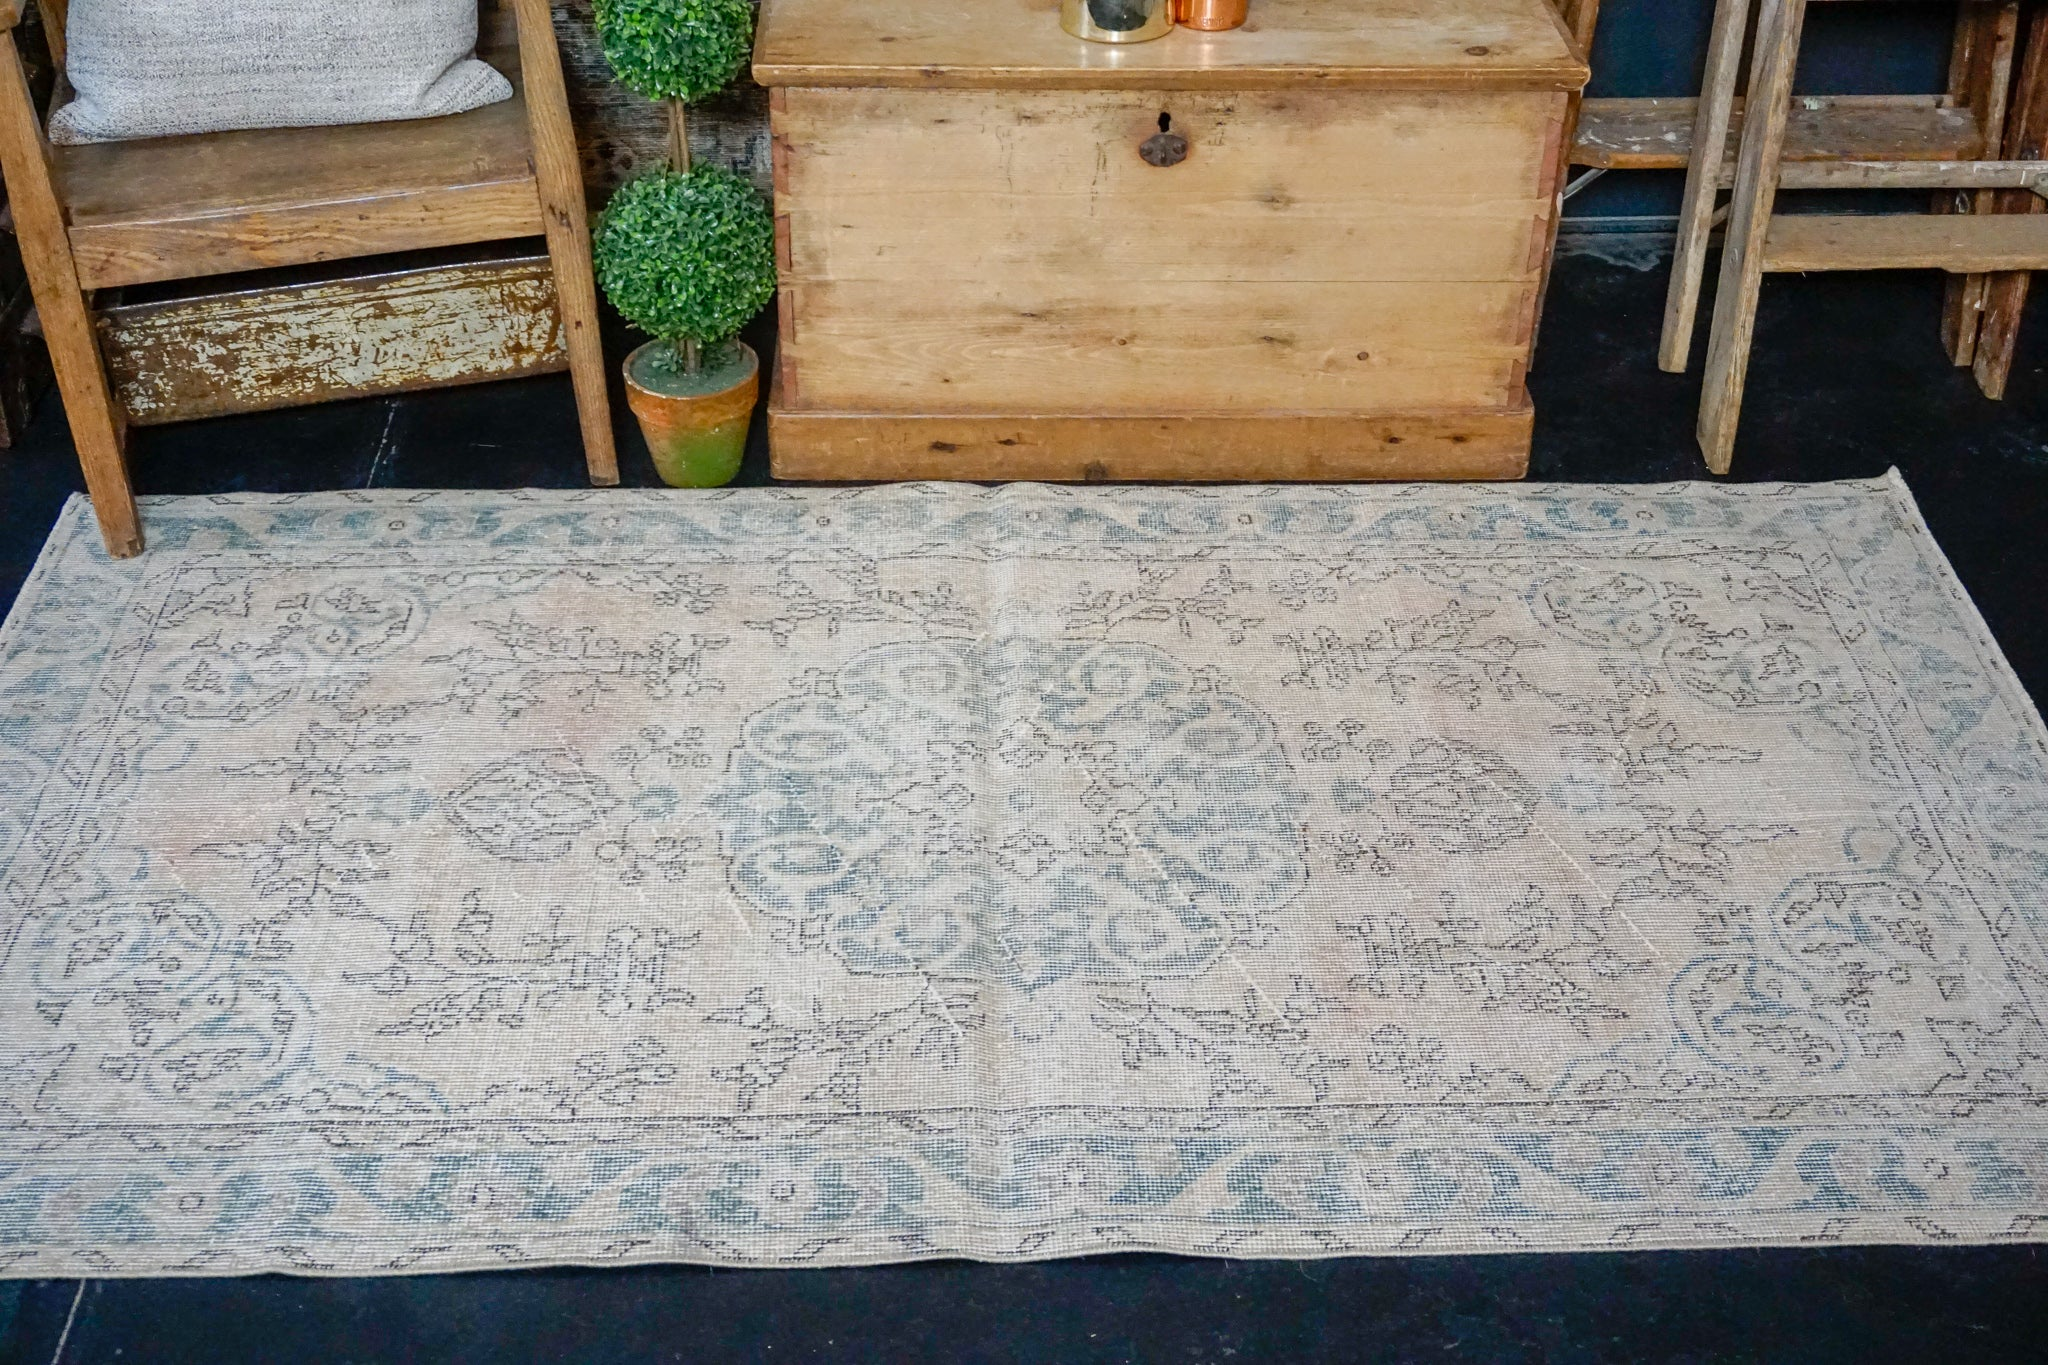 3'8 x 6'8 Vintage Turkish Oushak Rug Pink-Beige and Turquoise